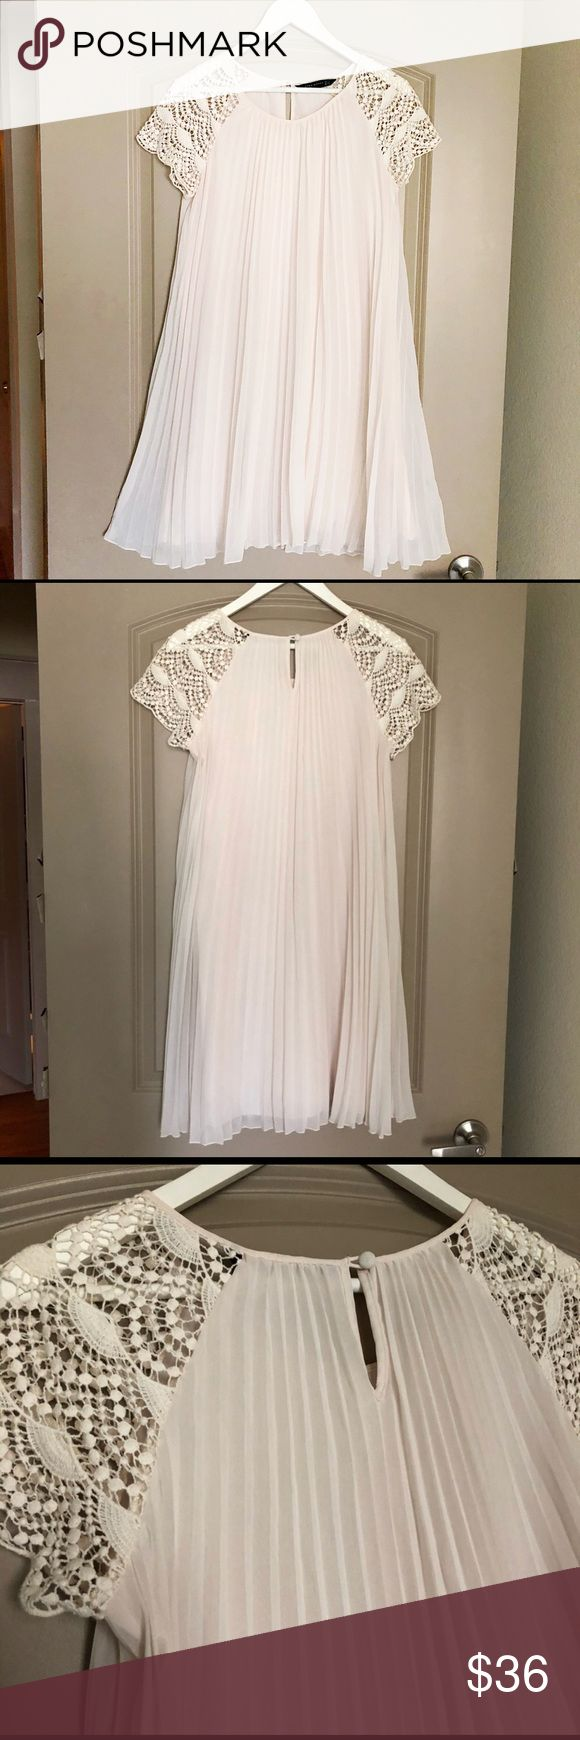 Zara accordion pleated mini dress Gorgeous semi sheer cream dress with crochet short sleeves & Trapeze swing silhouette. Fully lined. Pair with nude seamless bra & thong.  PERFECT FOR GRADUATION OR WEDDING!  Size Medium. Fits size 4-10.  Dry clean. Zara Dresses Mini